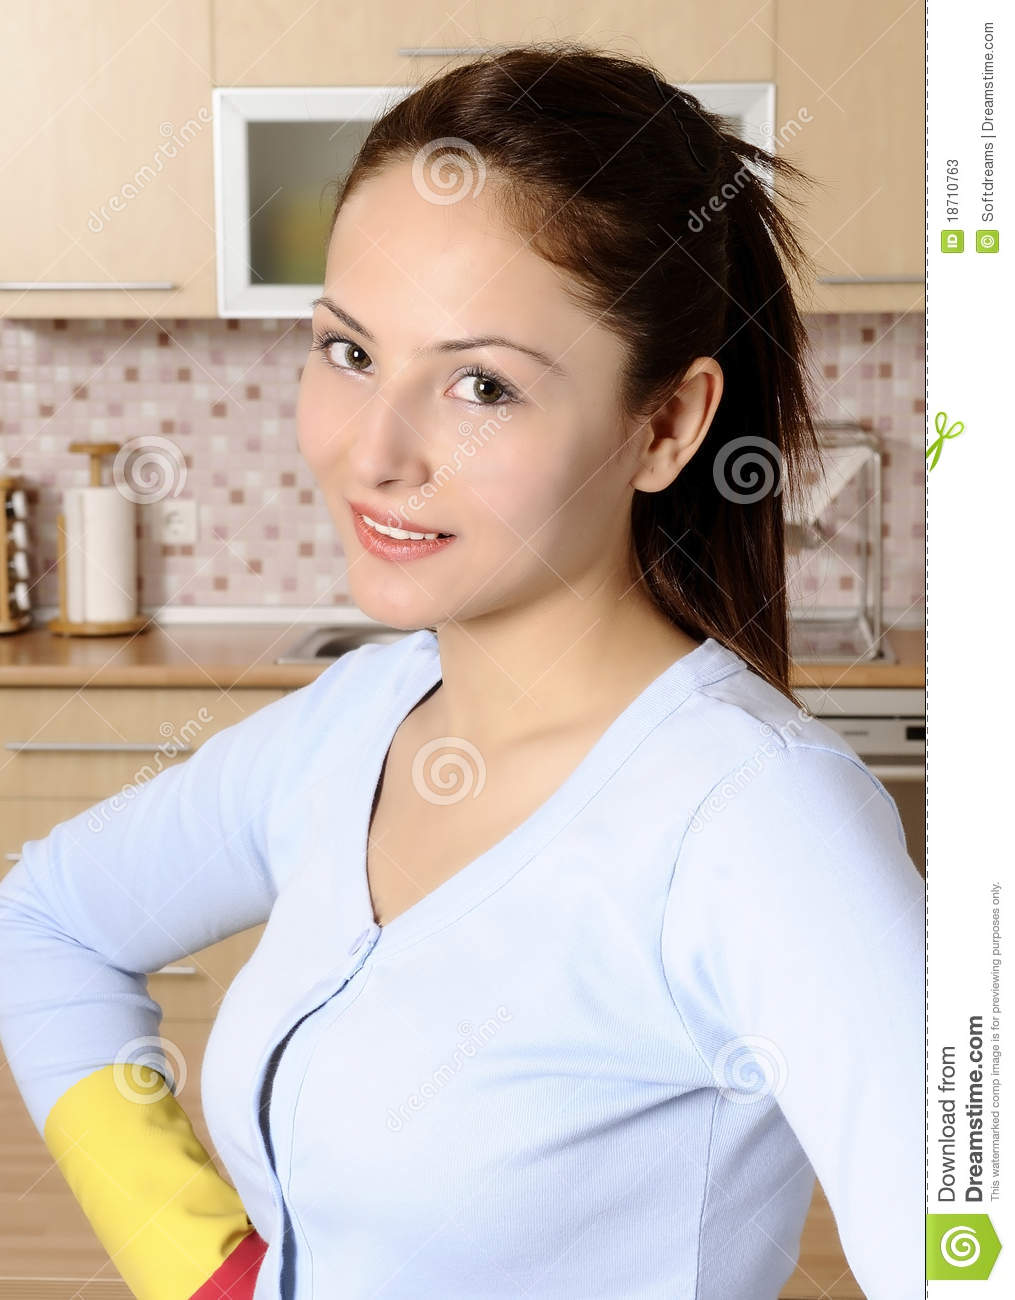 Stock Photo  ic Book T Rex Image9825980 furthermore Royalty Free Stock Photo Zodiac Star Signs Image7424215 additionally Royalty Free Stock Image Living Doll Tall Slender Woman Blue Hair Pink Latex Image35623596 in addition Clinical Laboratory also Stock Photos Beautiful Attractive Women Cleaning House Image18710763. on living room themes